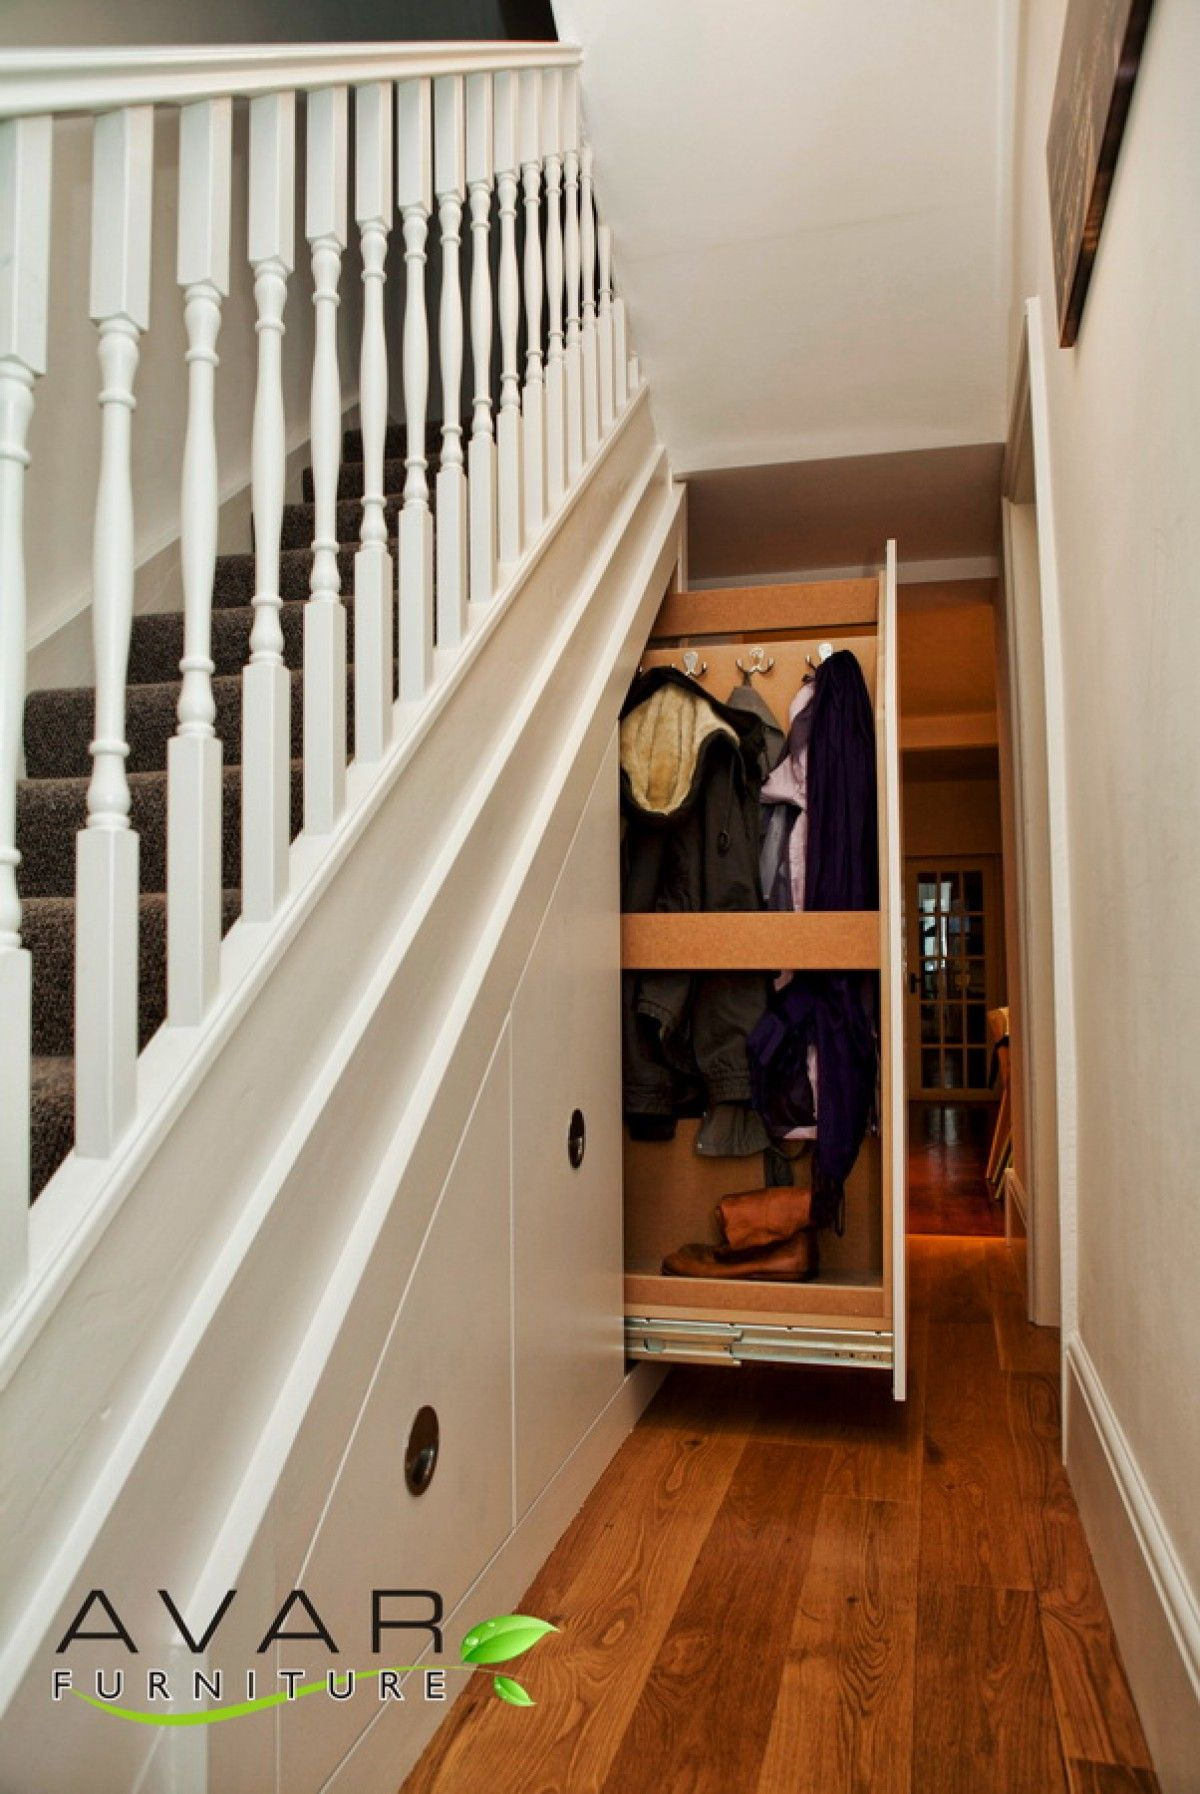 Stairs Shelving Under Stairs Shelving Solutions From Avar Furniture